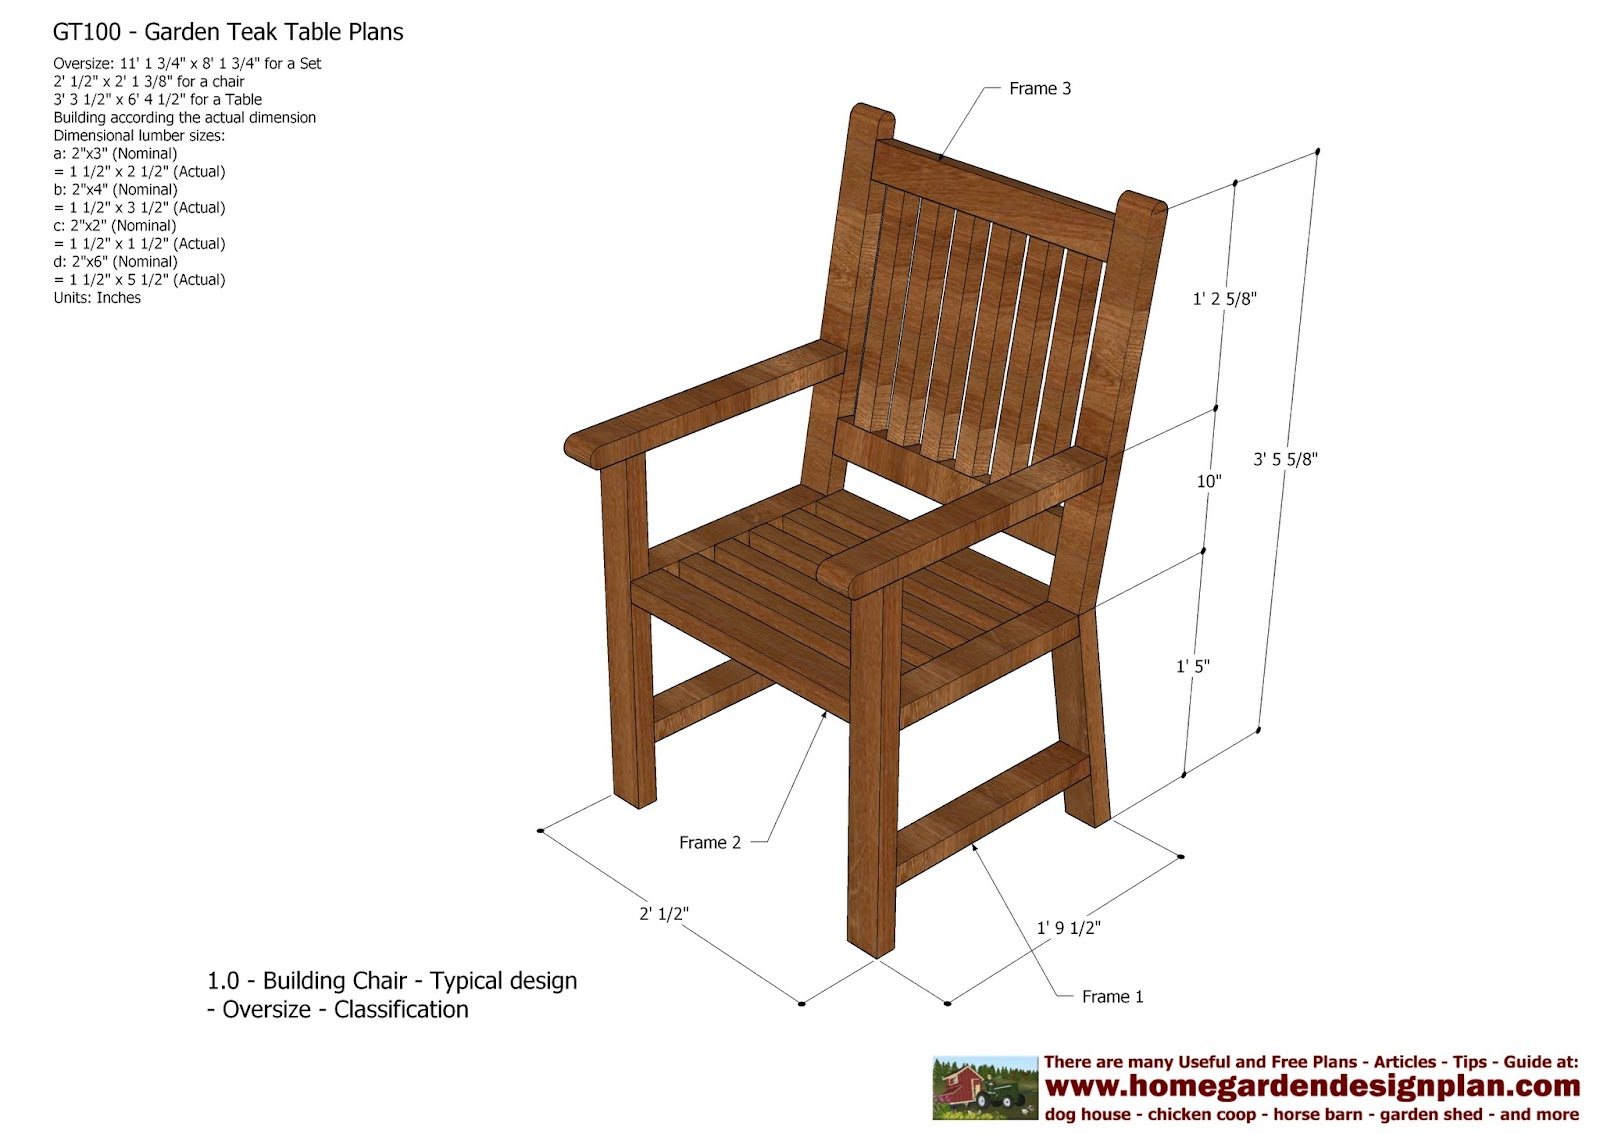 Home garden plans gt100 garden teak tables for 100 chair design